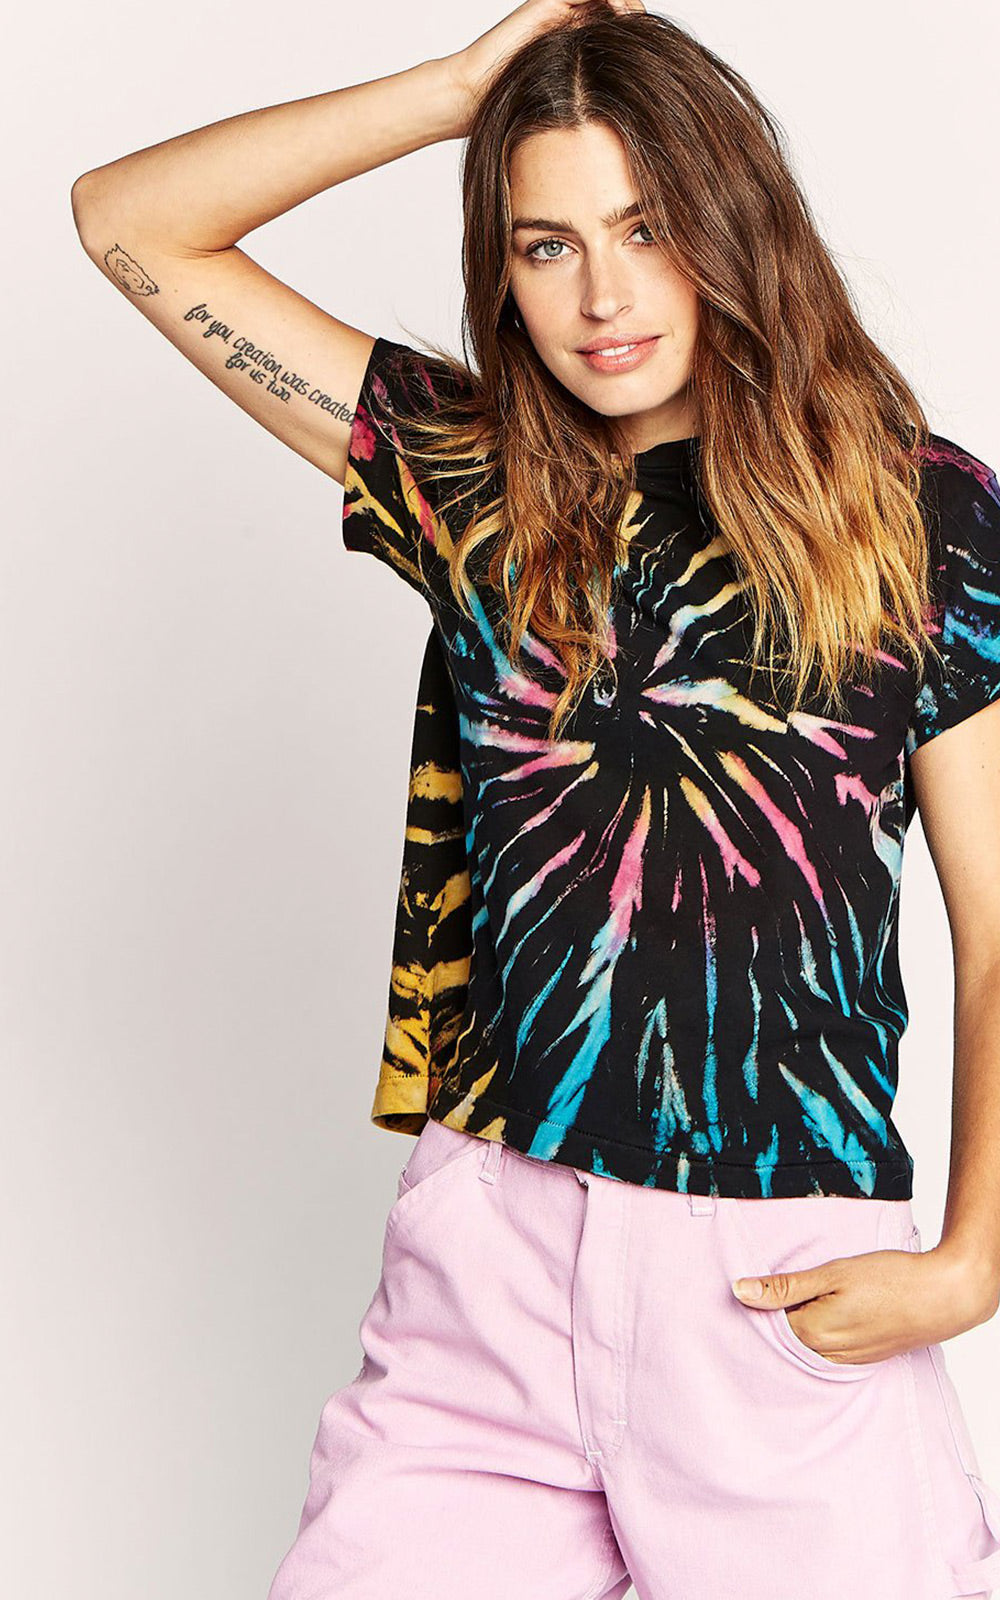 Tie-Dye Black Neon Rainbow Tie-Dye Girlfriend T-Shirt